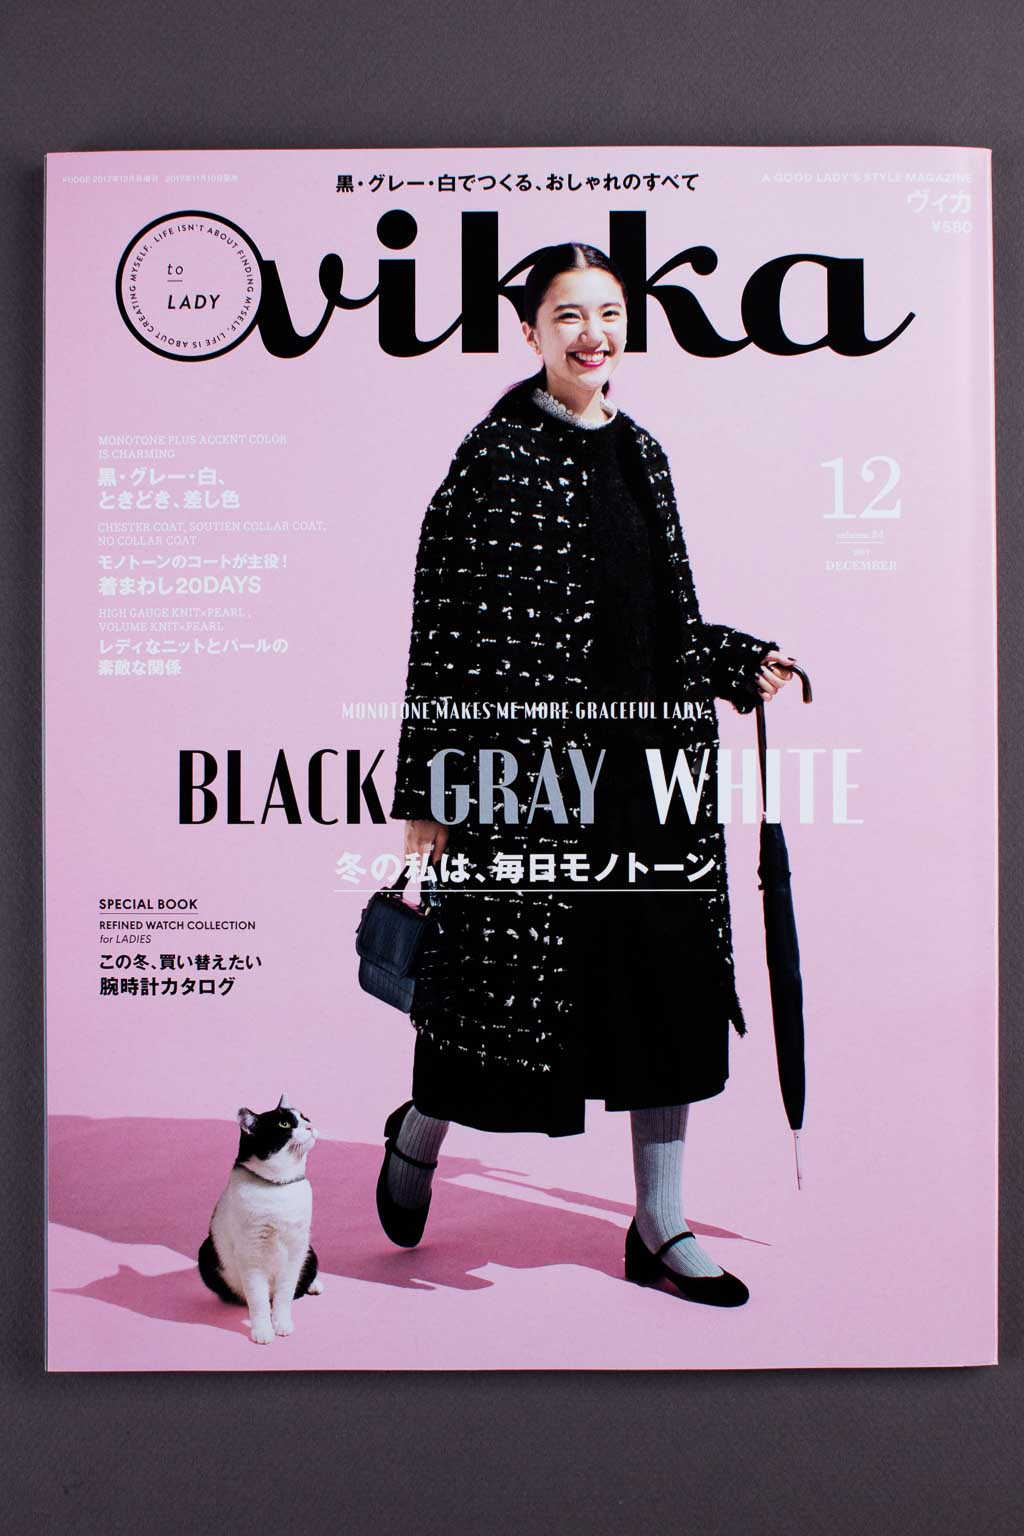 Vikka Magazine Dec. 17